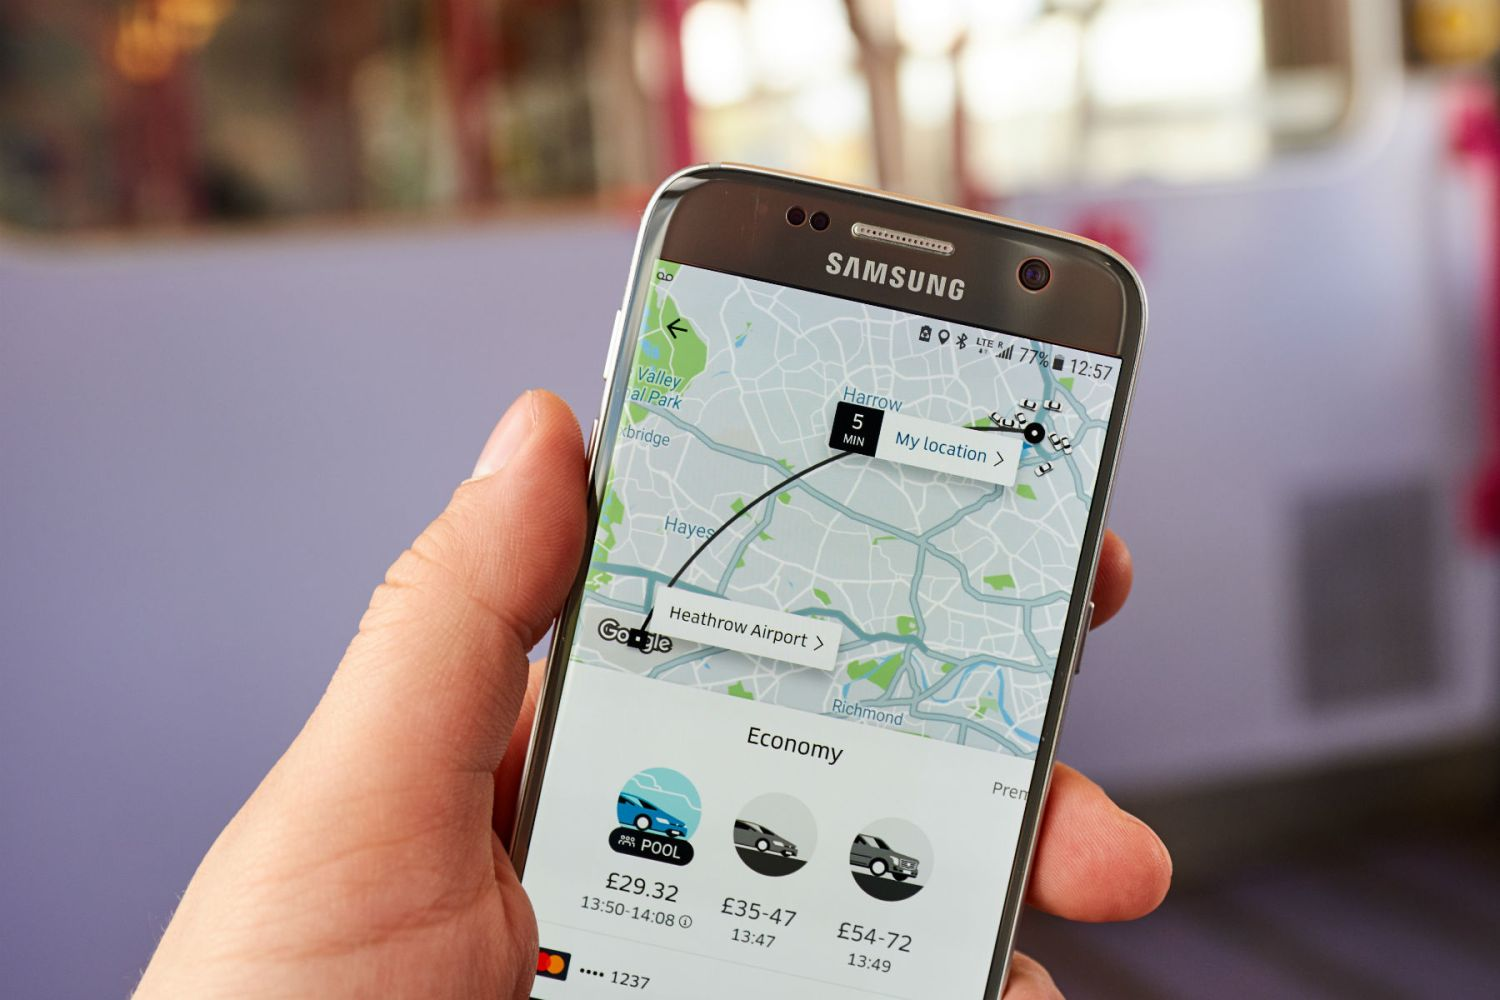 Uber is 'not fit and proper' to operate in London